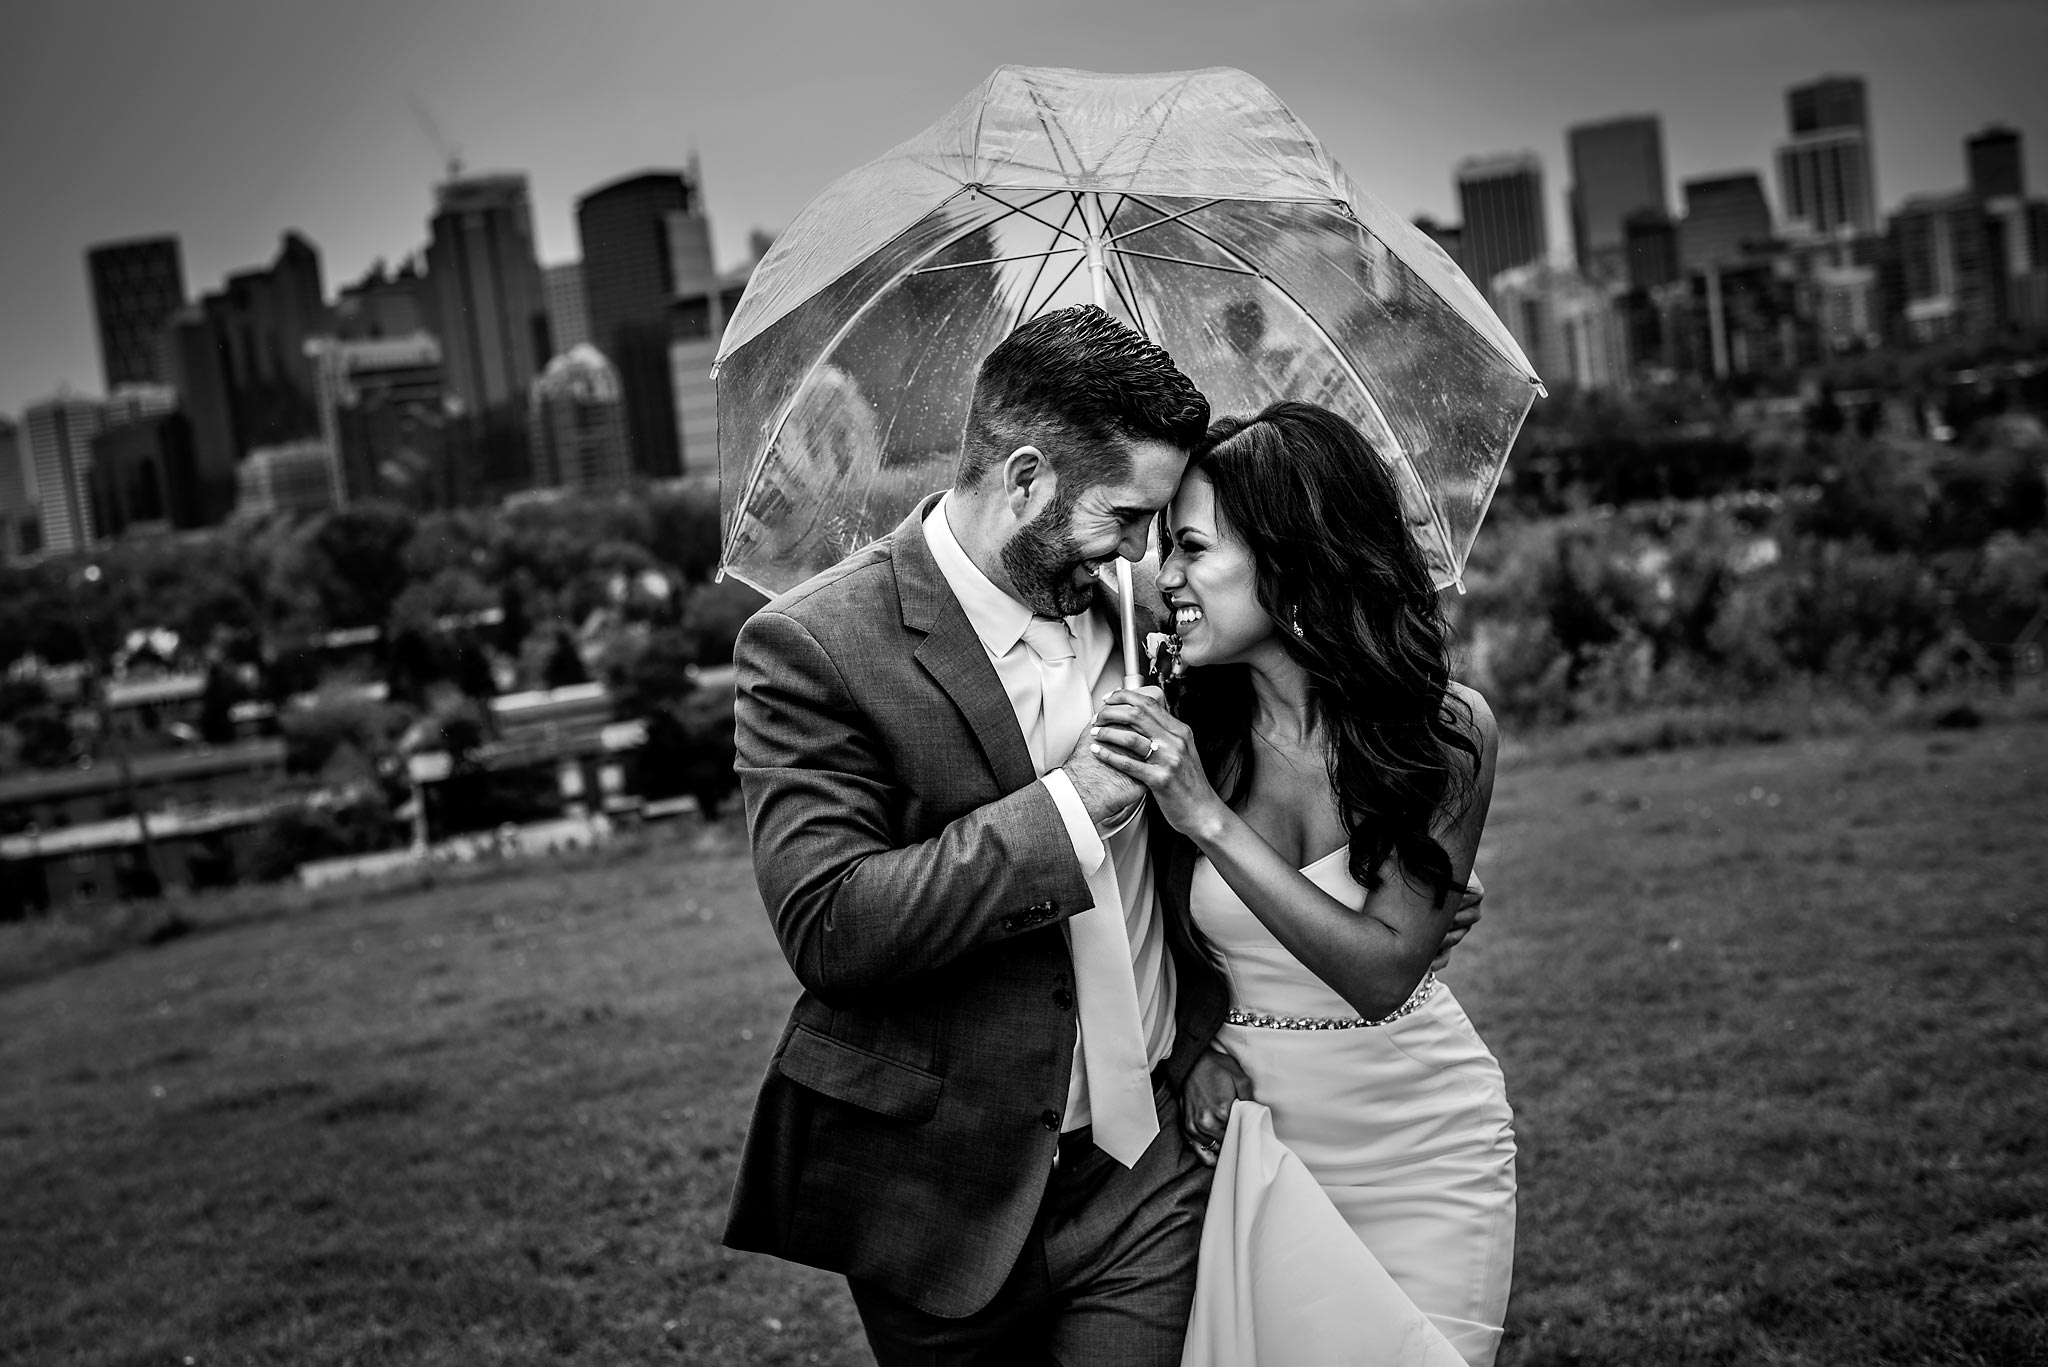 bride and groom walking up a hill together holding an umbrella with the downtown city skyline in the background - calgary sean leblanc wedding photographers